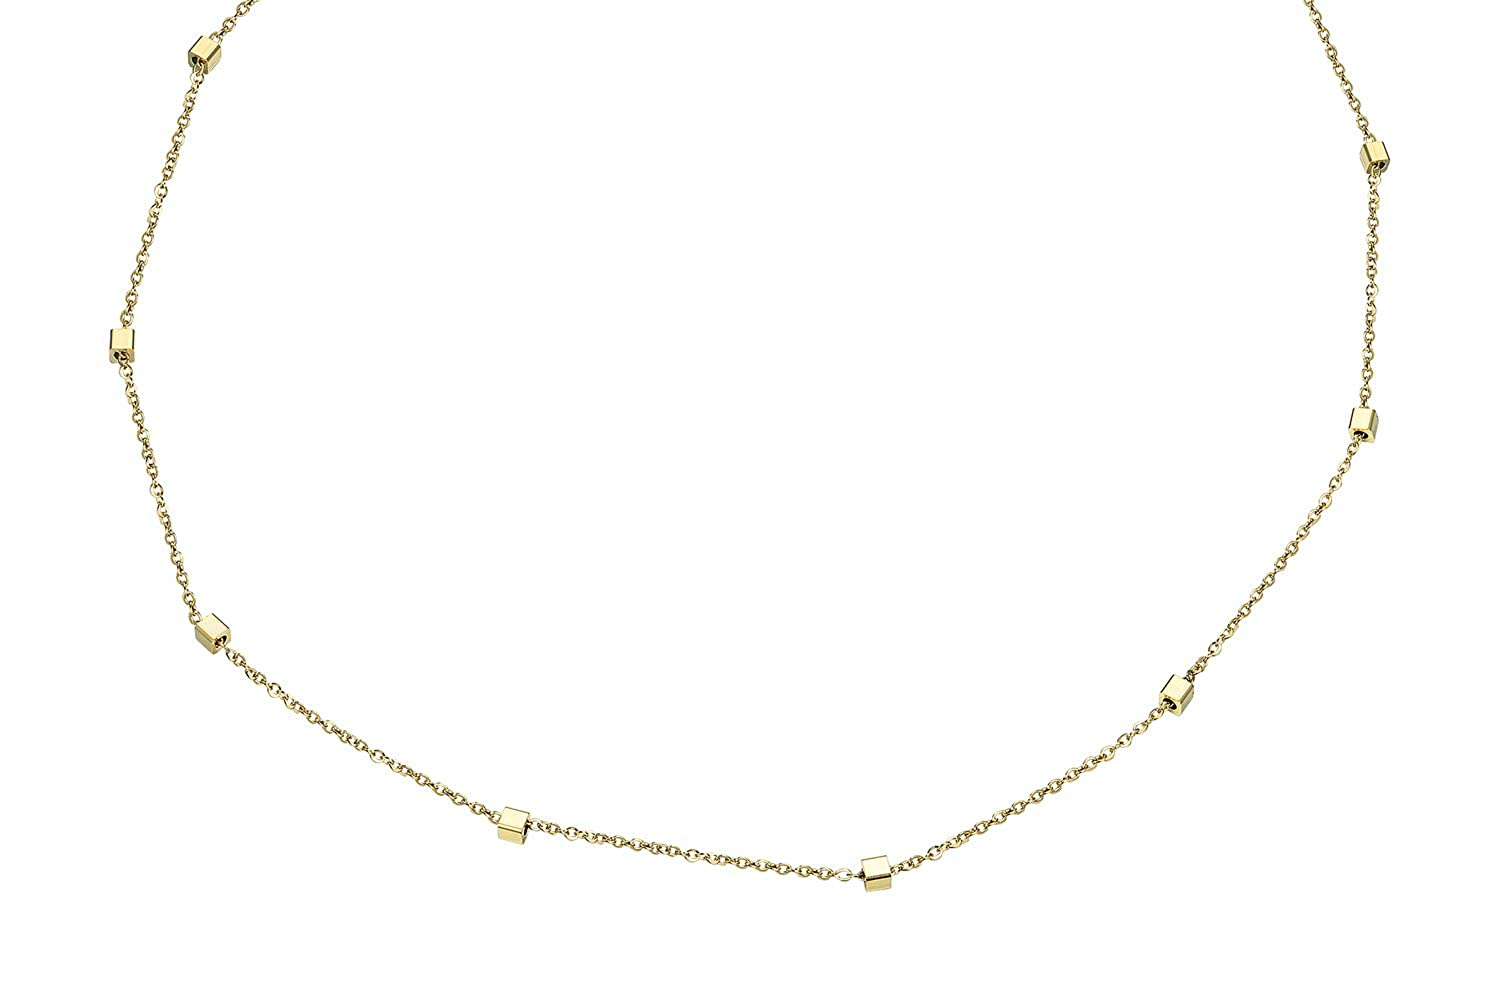 SCARL Dainty Rose Gold Minimalist Necklaces Beaded Curb Chain Choker for Women